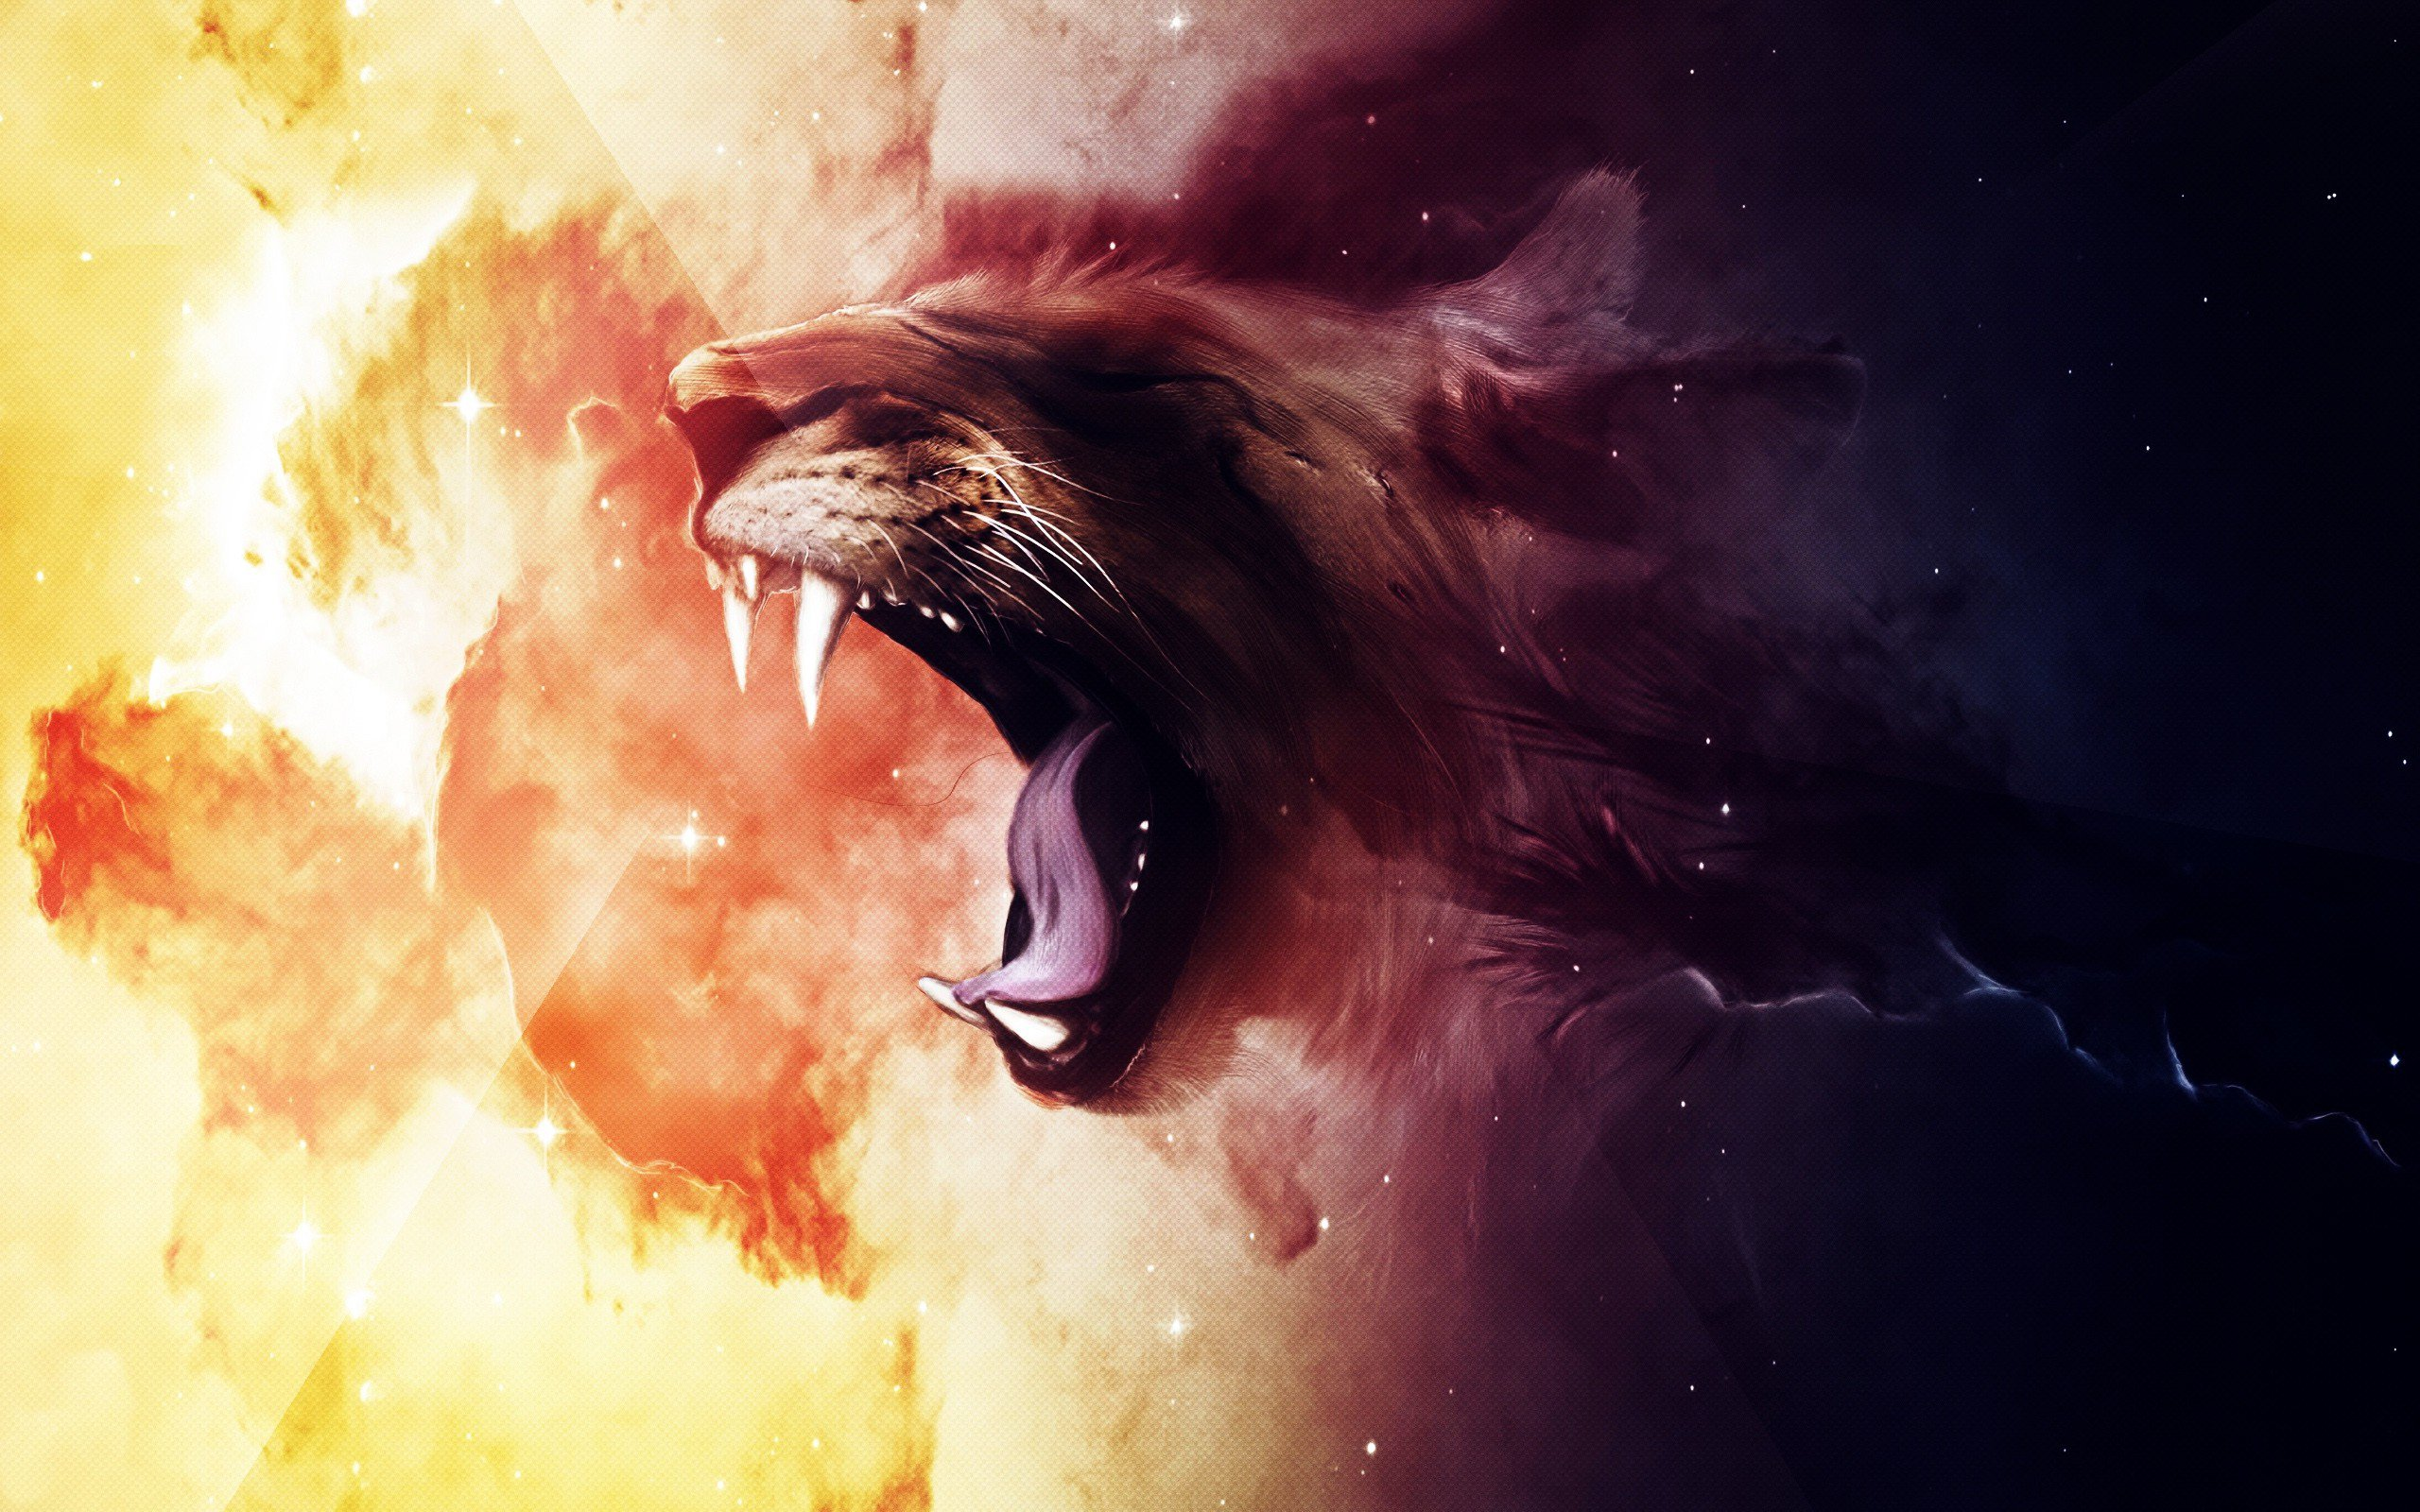 Best 3d Animated Wallpapers For Android Roaring Lion Hd Creative 4k Wallpapers Images